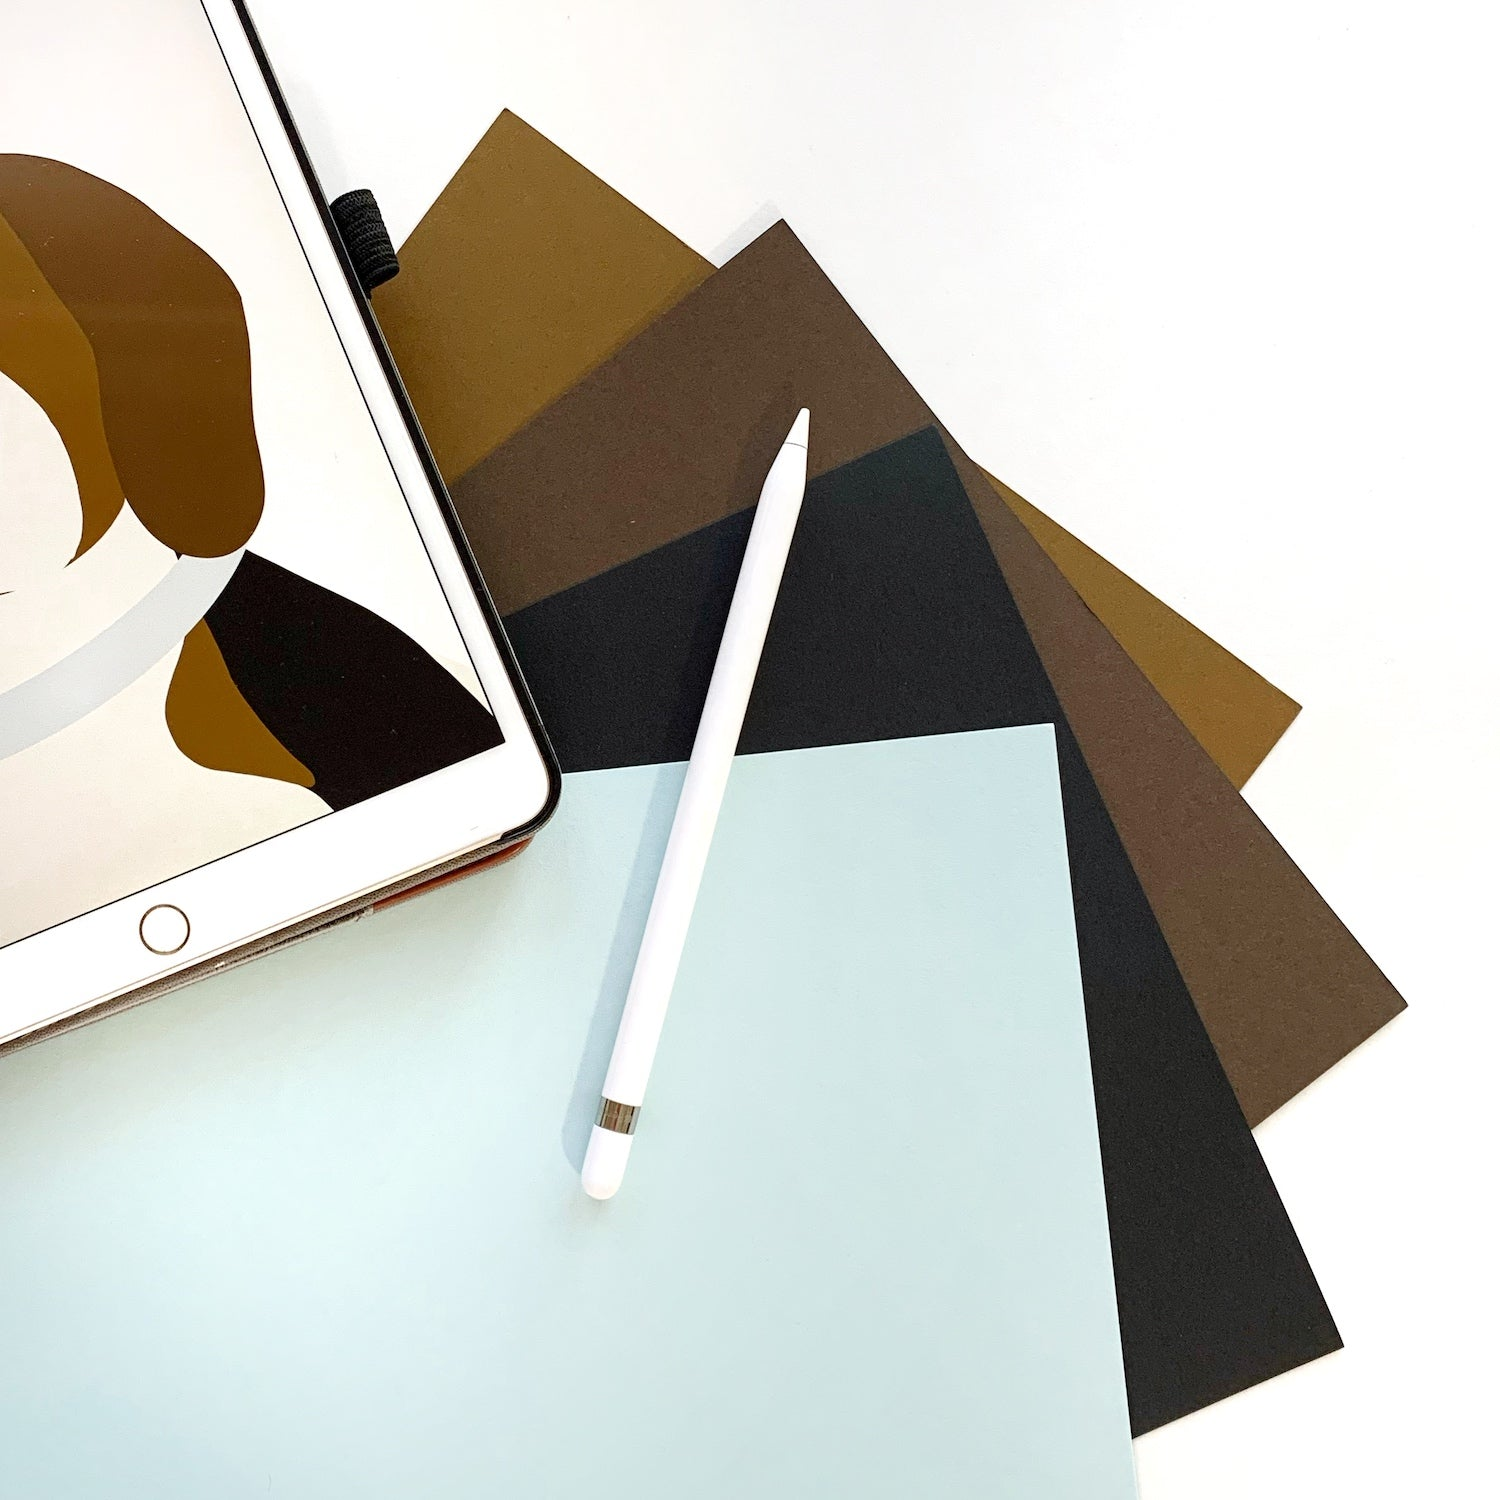 Speckletone Brown, Speckletone Chocolate, Black Licorice, and Sno Cone Papers with iPad and Apple Pencil